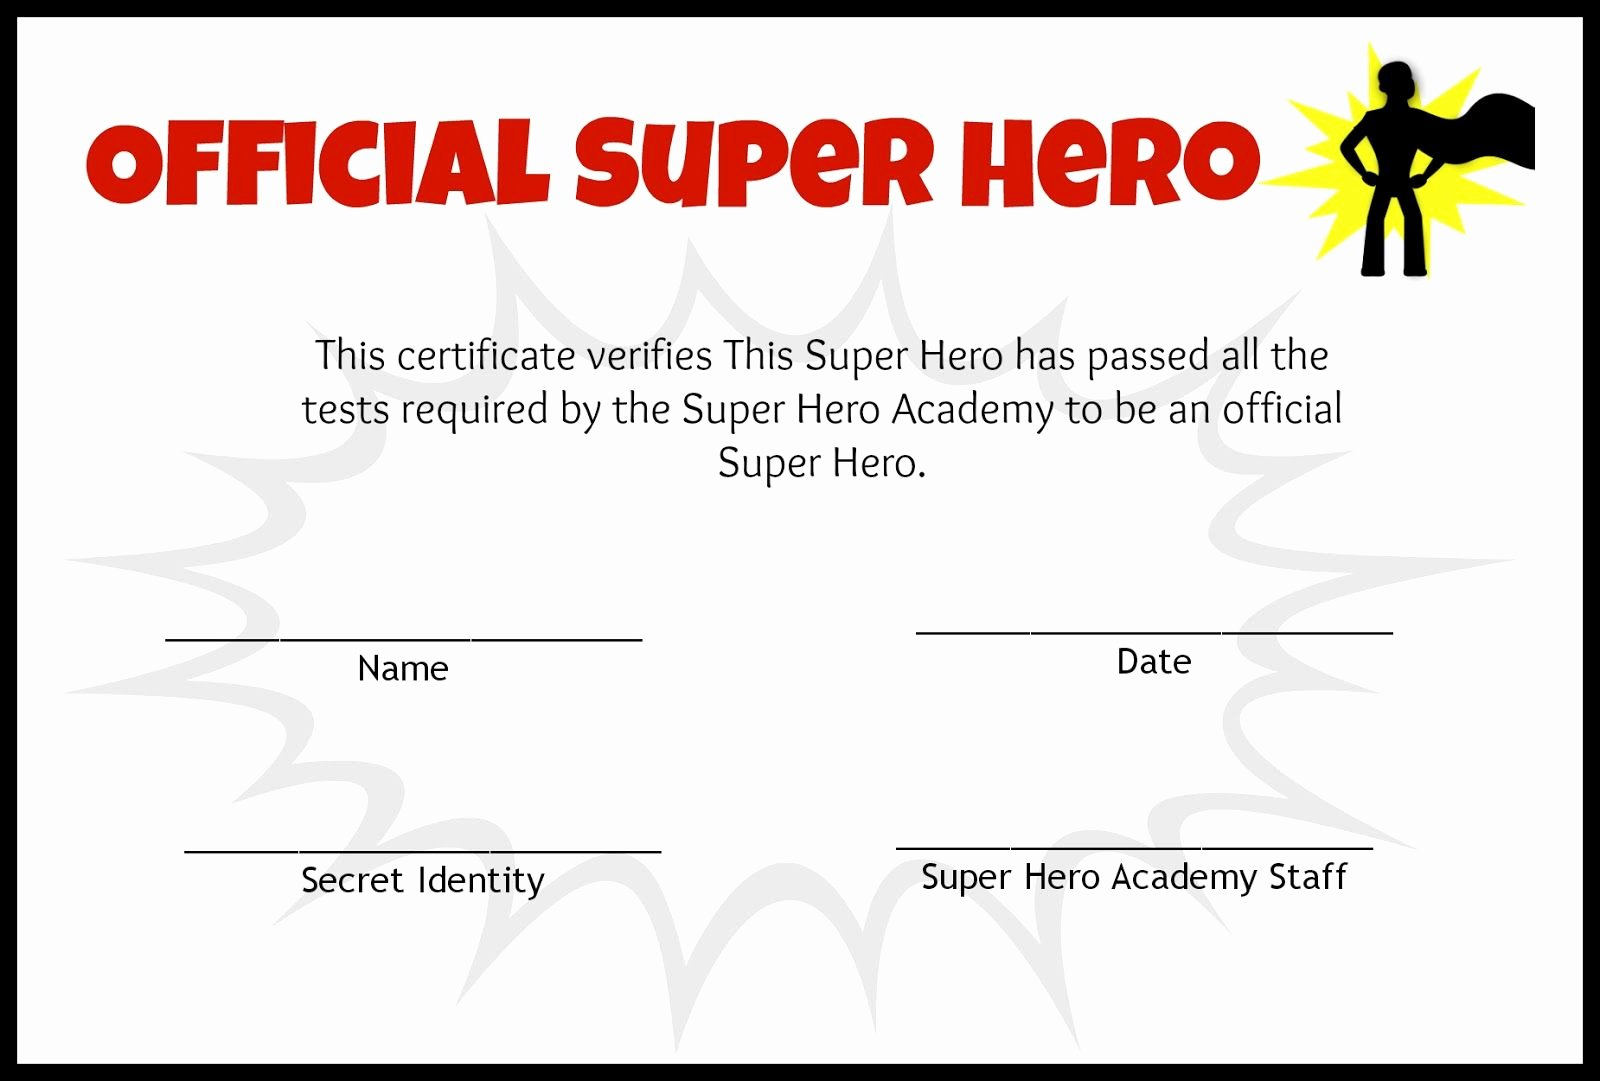 My Hero Award Template Beautiful after the Obstacle Course All the Kids Got Certificates